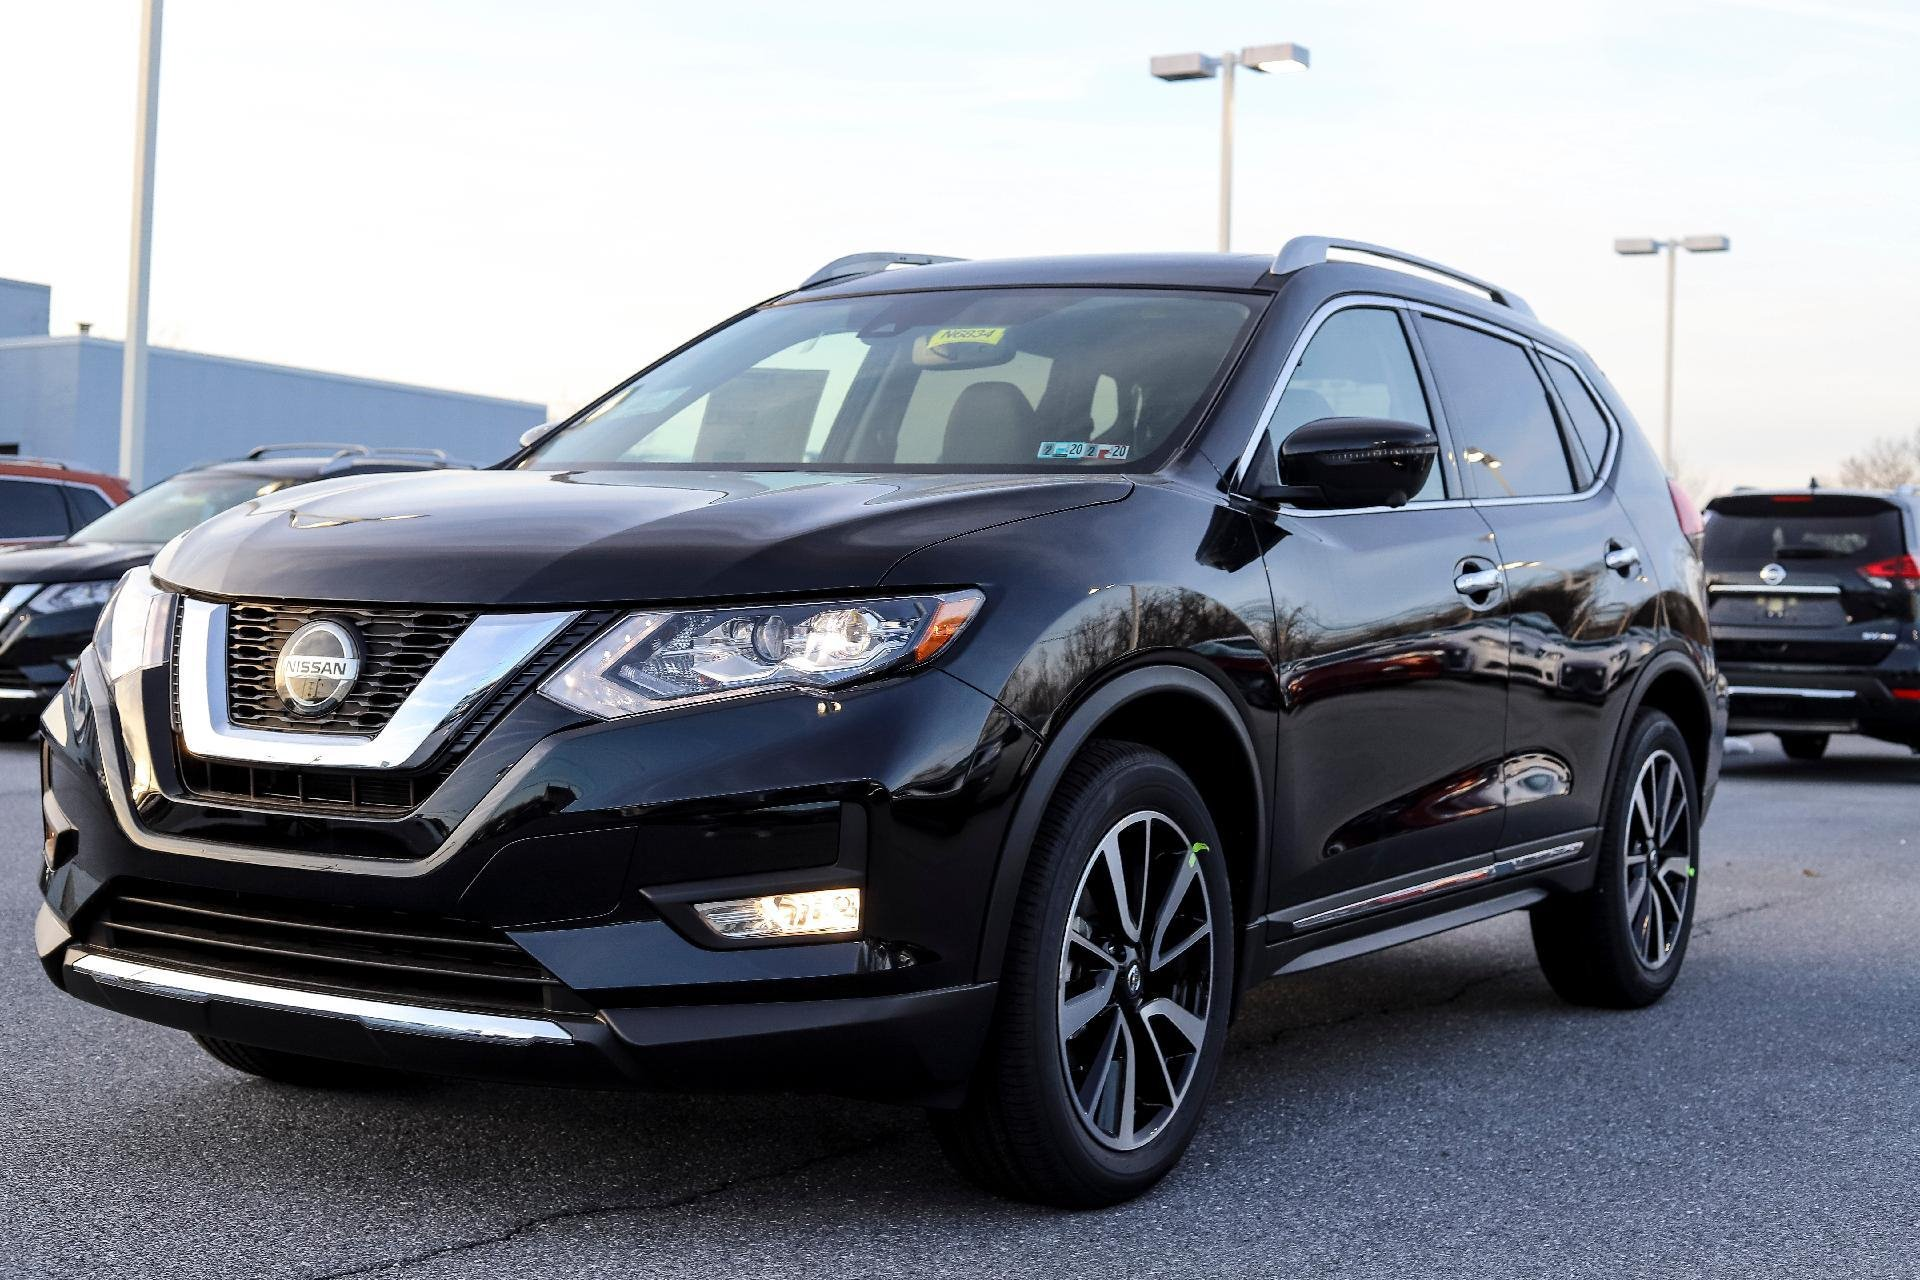 New 2019 Nissan Rogue SL SL for sale $32,840 at M and V Leasing in Brooklyn NY 11223 1